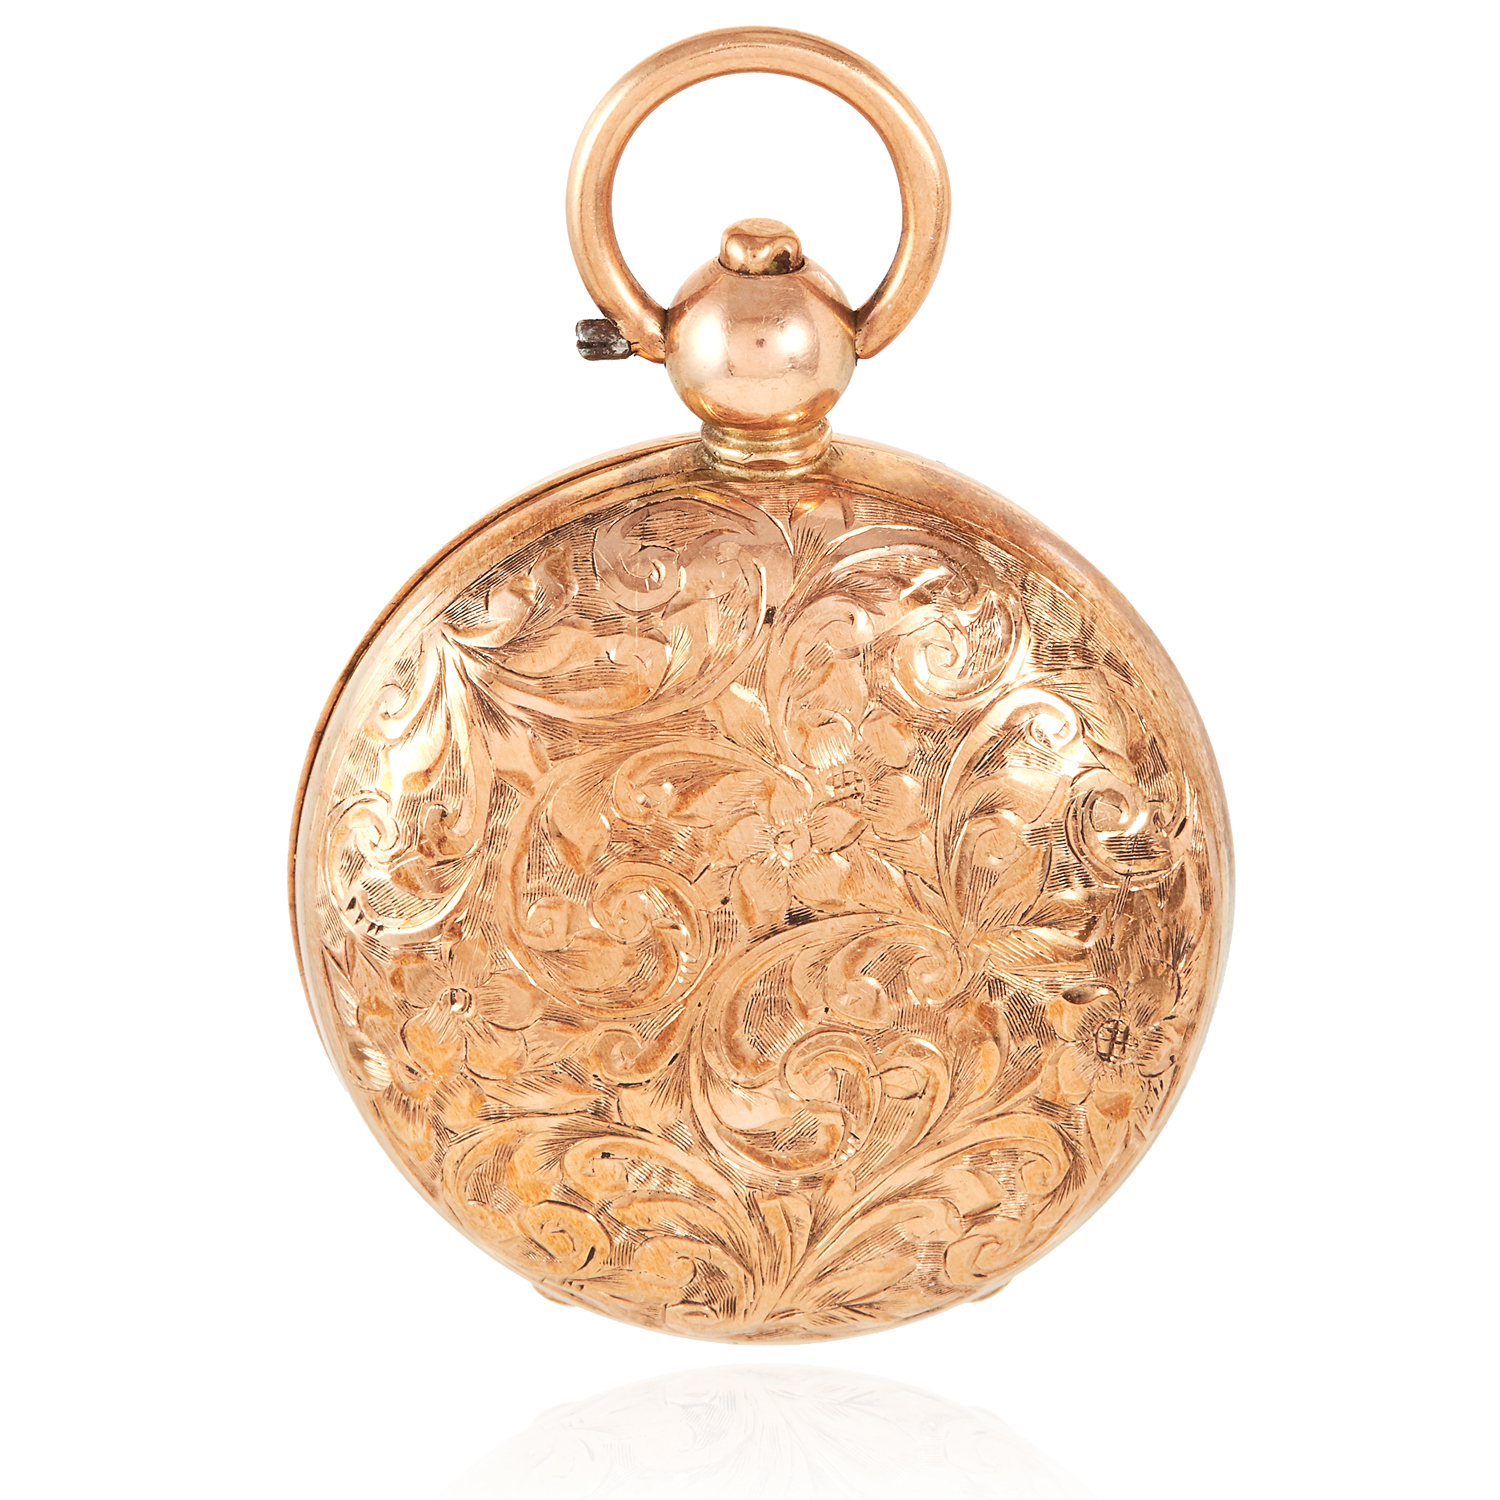 AN ANTIQUE 9 CARAT GOLD SOVEREIGN HOLDER, EARLY 20TH CENTURY circular form, hinged lid with engraved